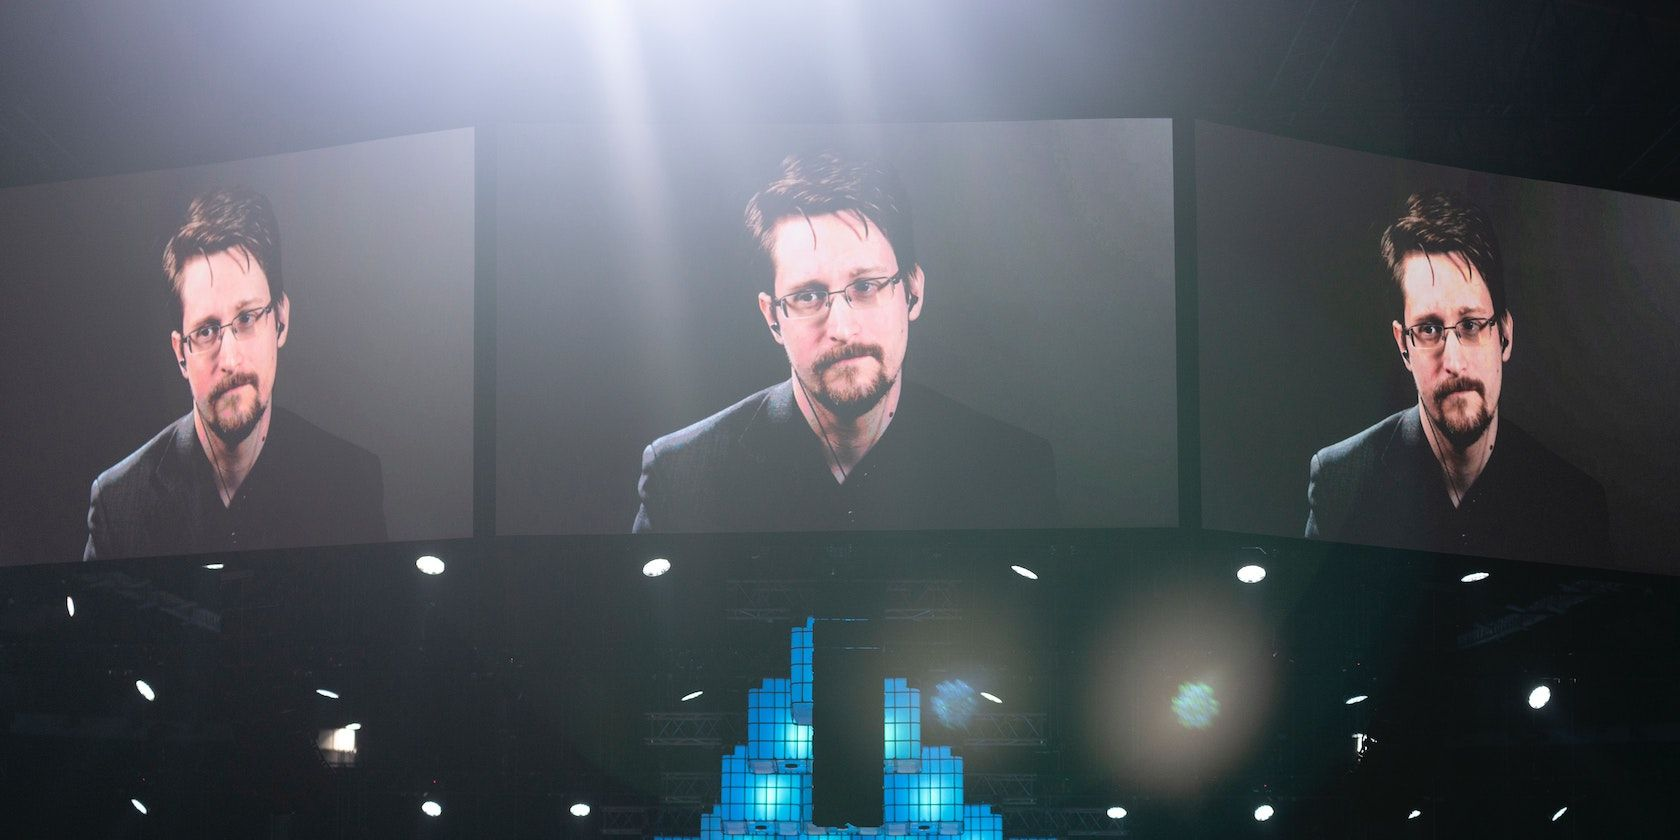 Edward Snowden Sells an NFT of His Face for $5.4 Million